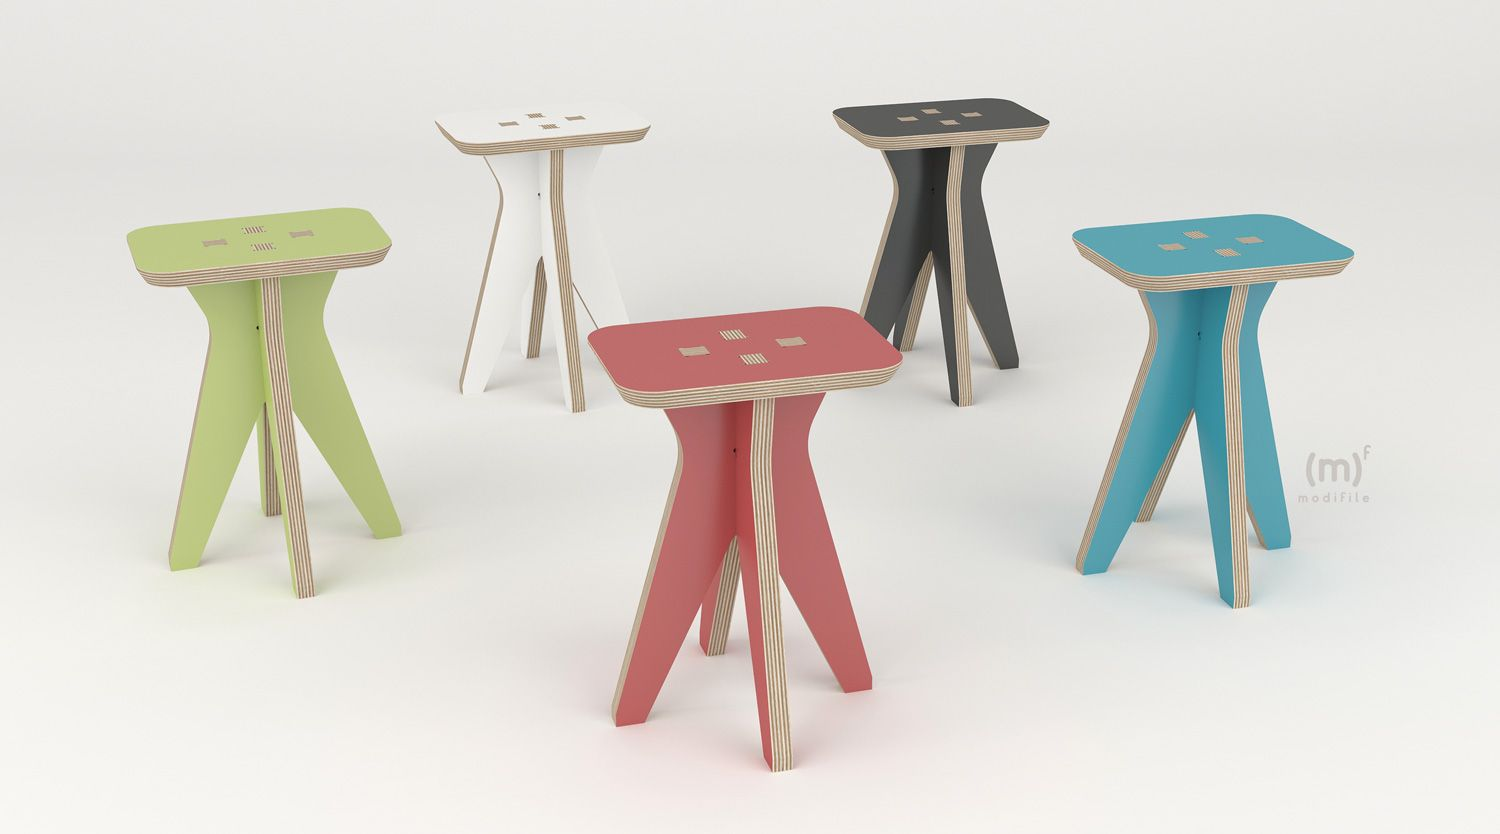 Hermes Stool Configurable stoll to be cut with cnc machines, pouf